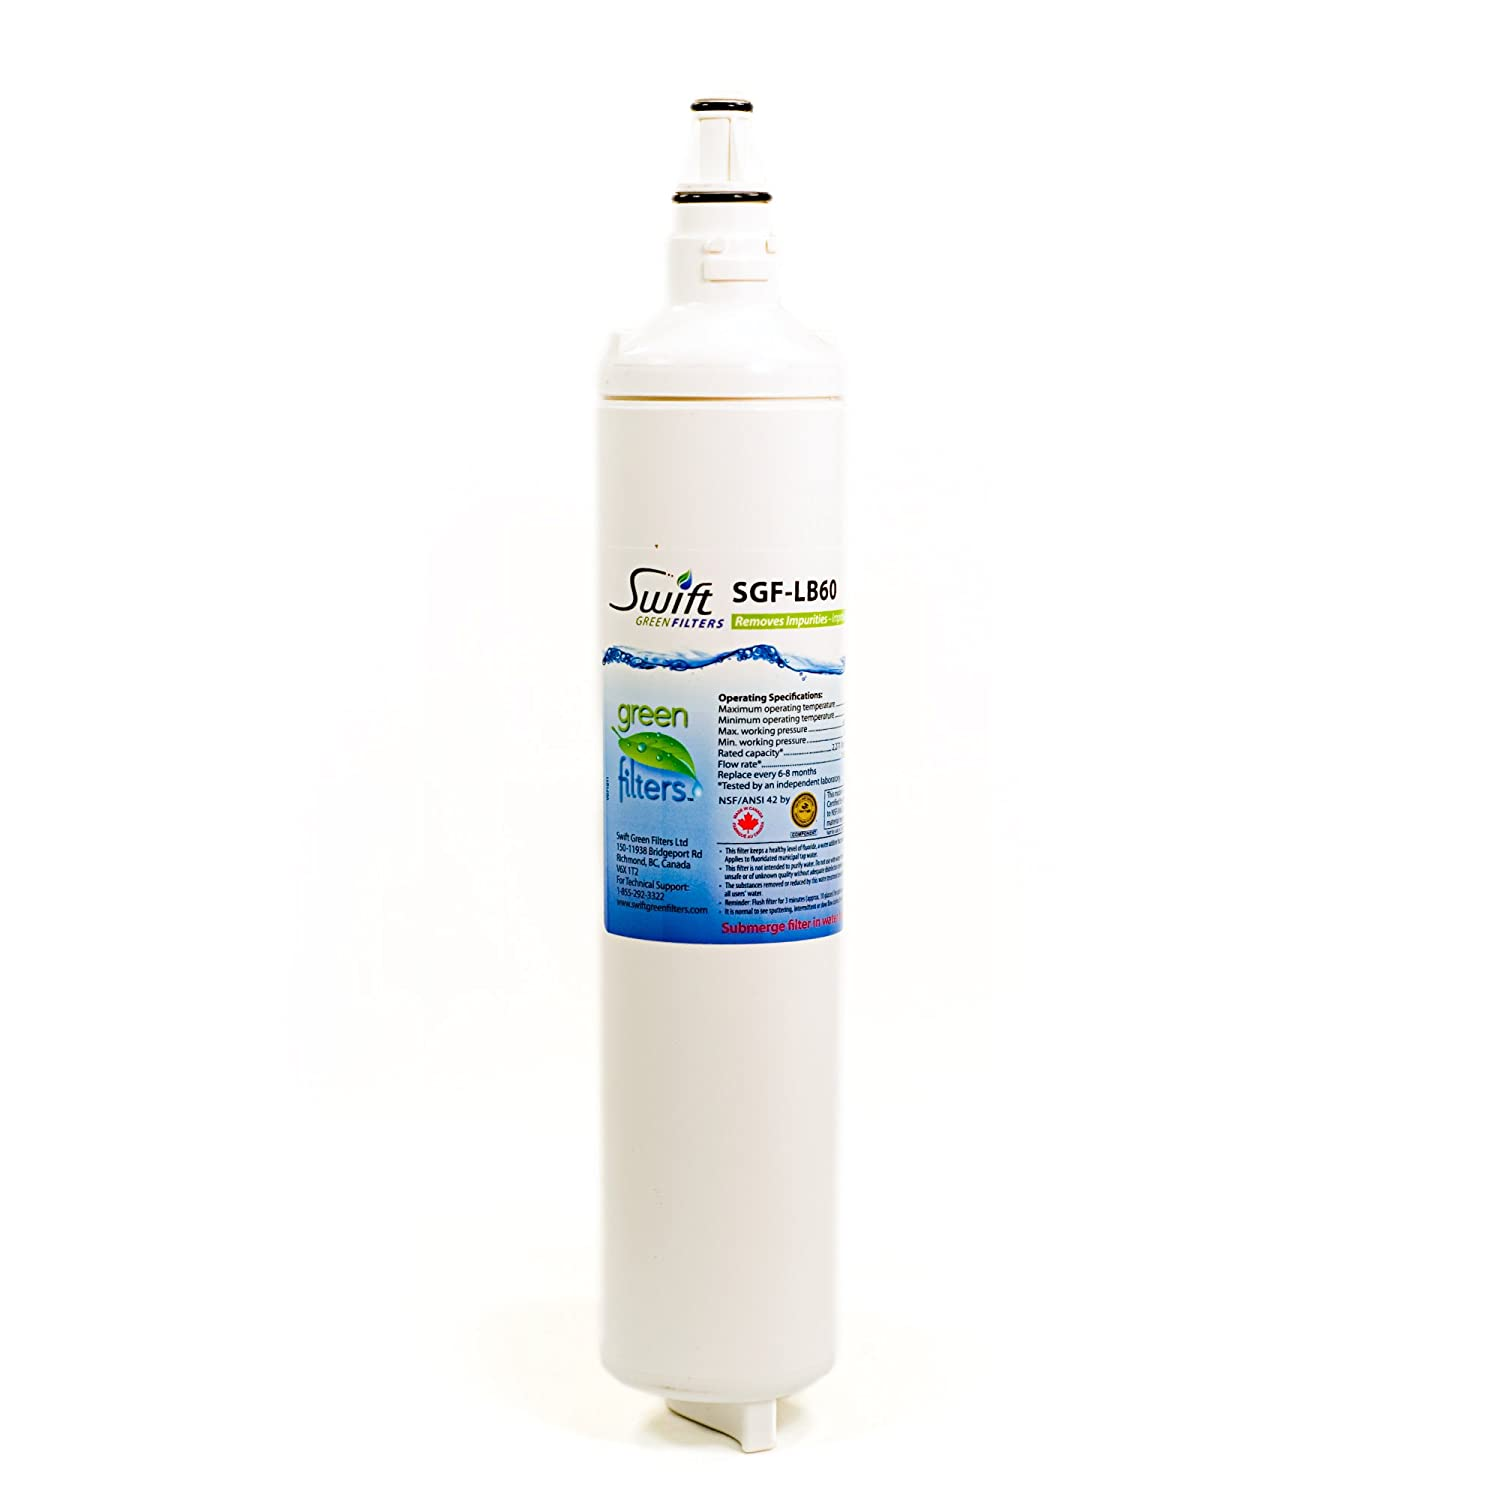 LG replacement water filter 5231JA2006B, LT 600P, 5231JA2005A, Sears/Kenmore: 9990, 469990100% recyclable, and made in U.S.A. and Canada SGF-LB60 (3 Pack)